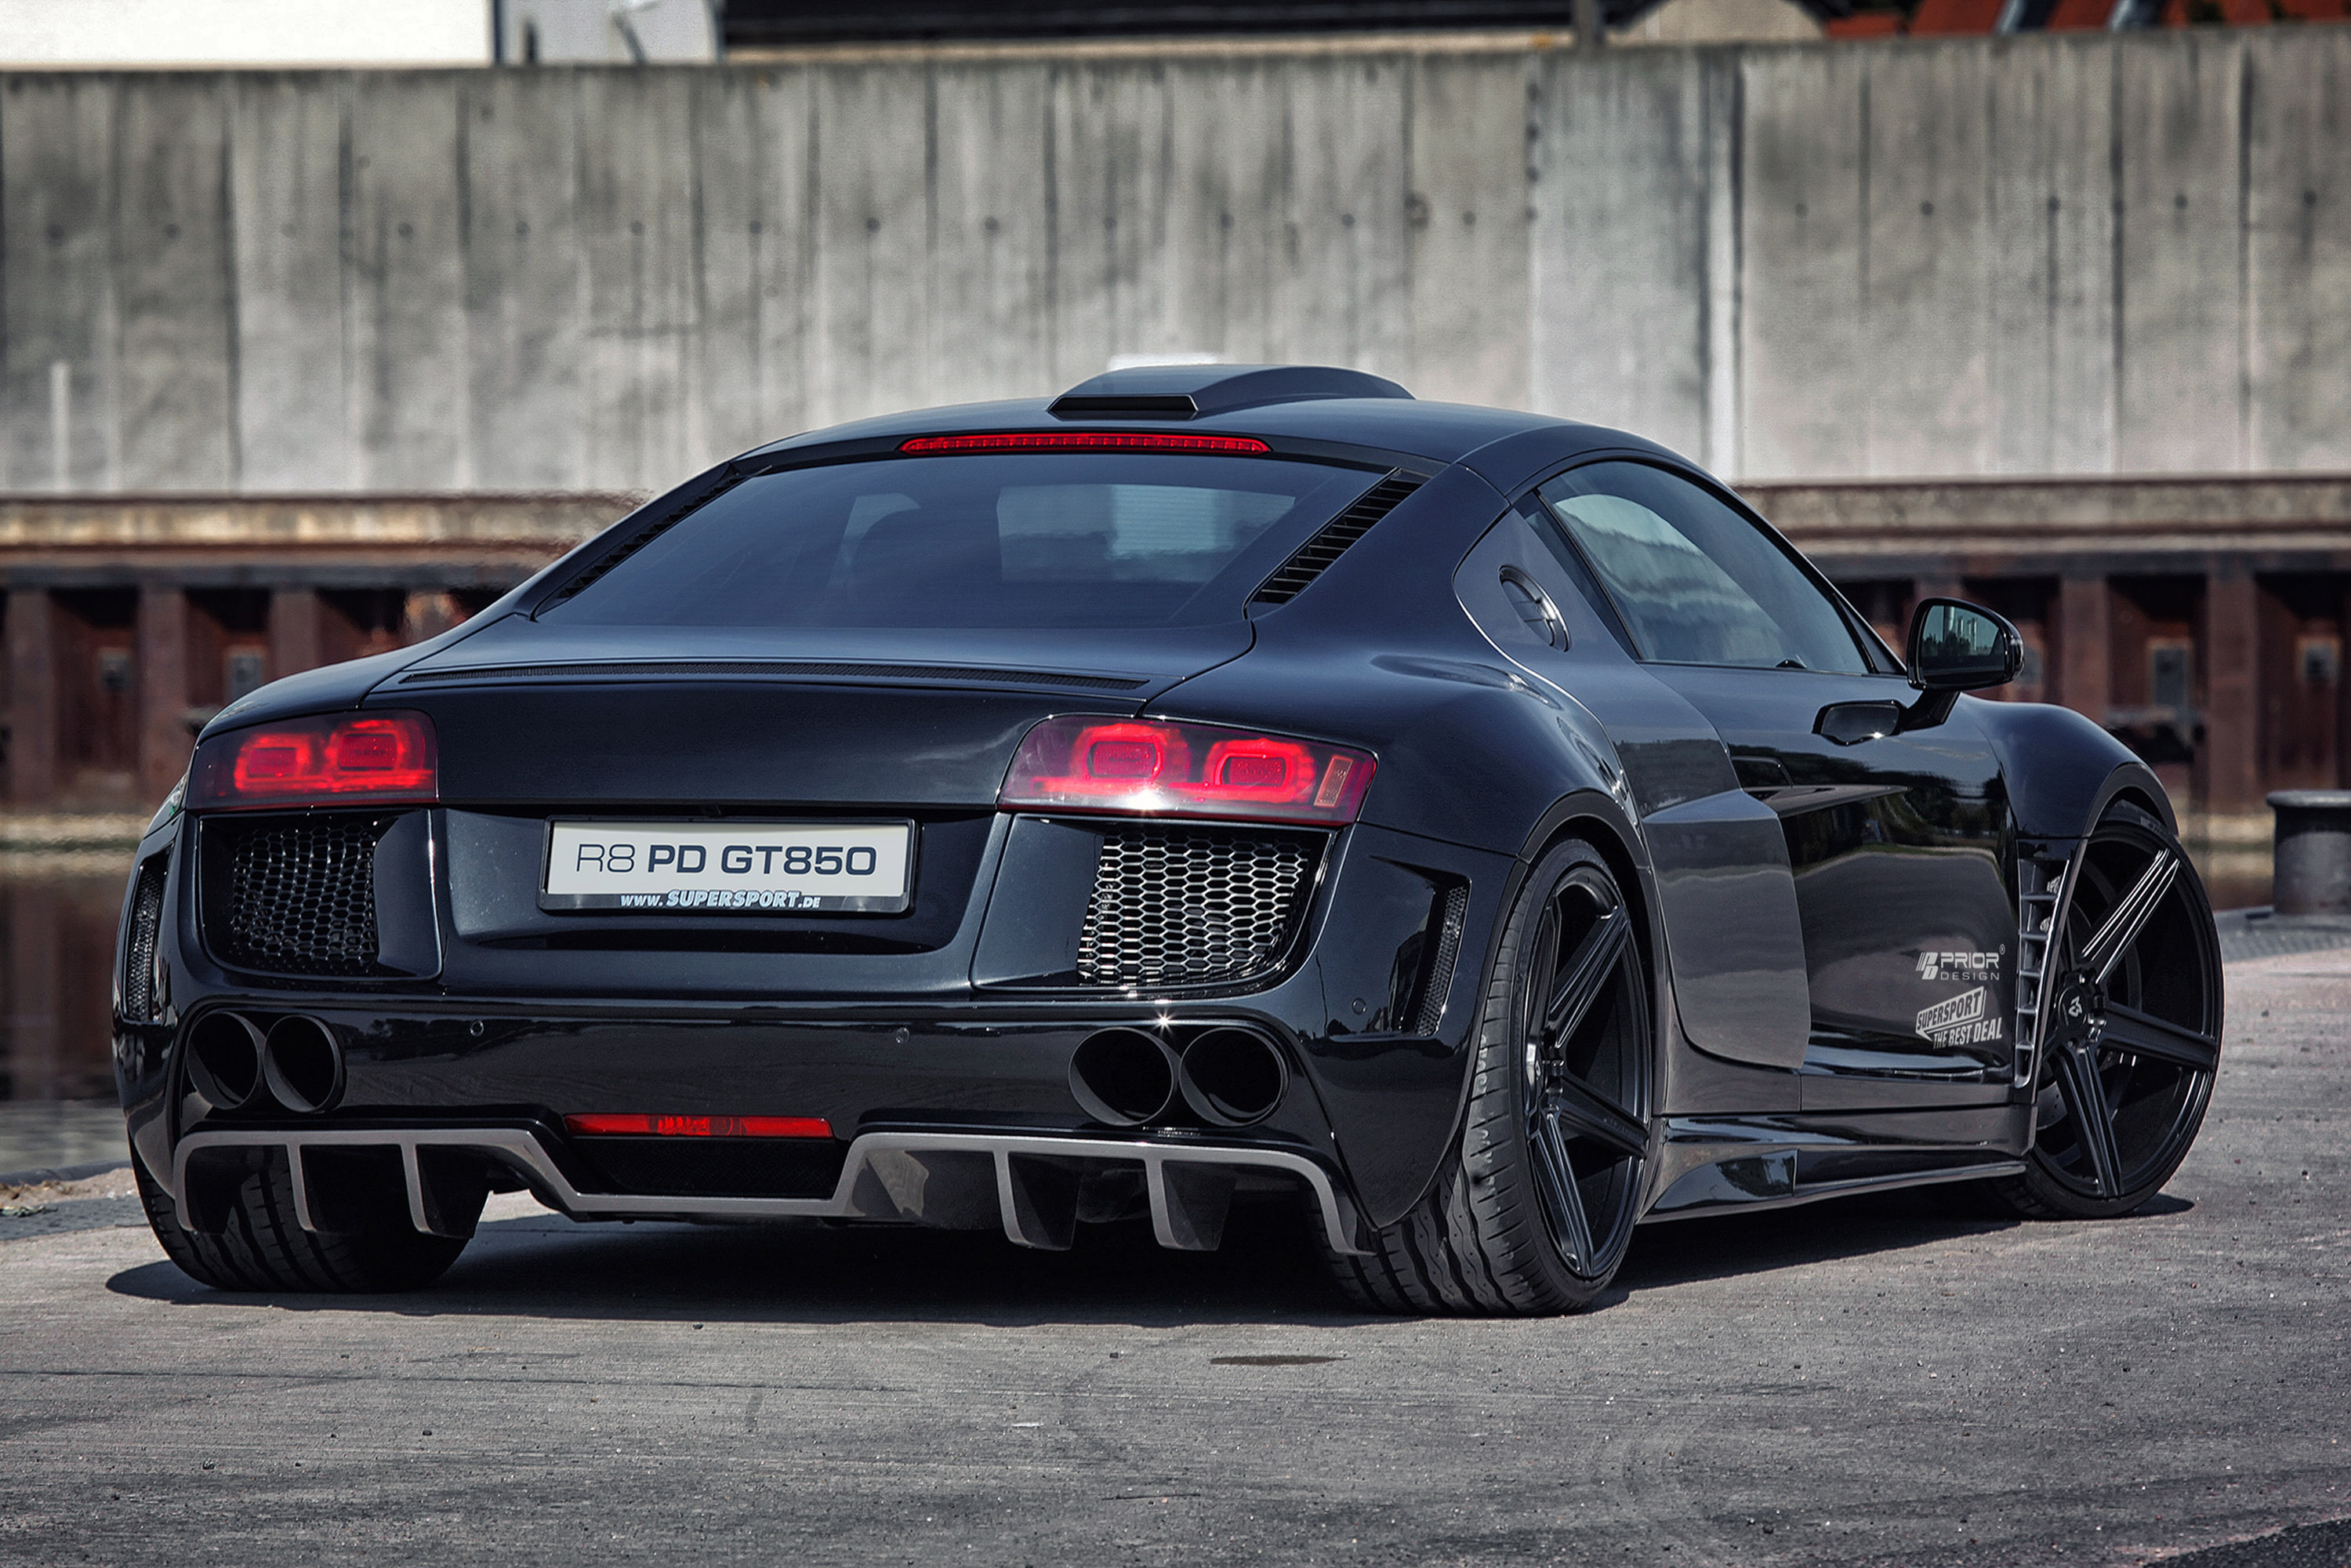 Prior Design Audi R8 Pd Gt850 Widebody Aerodynamic Kit